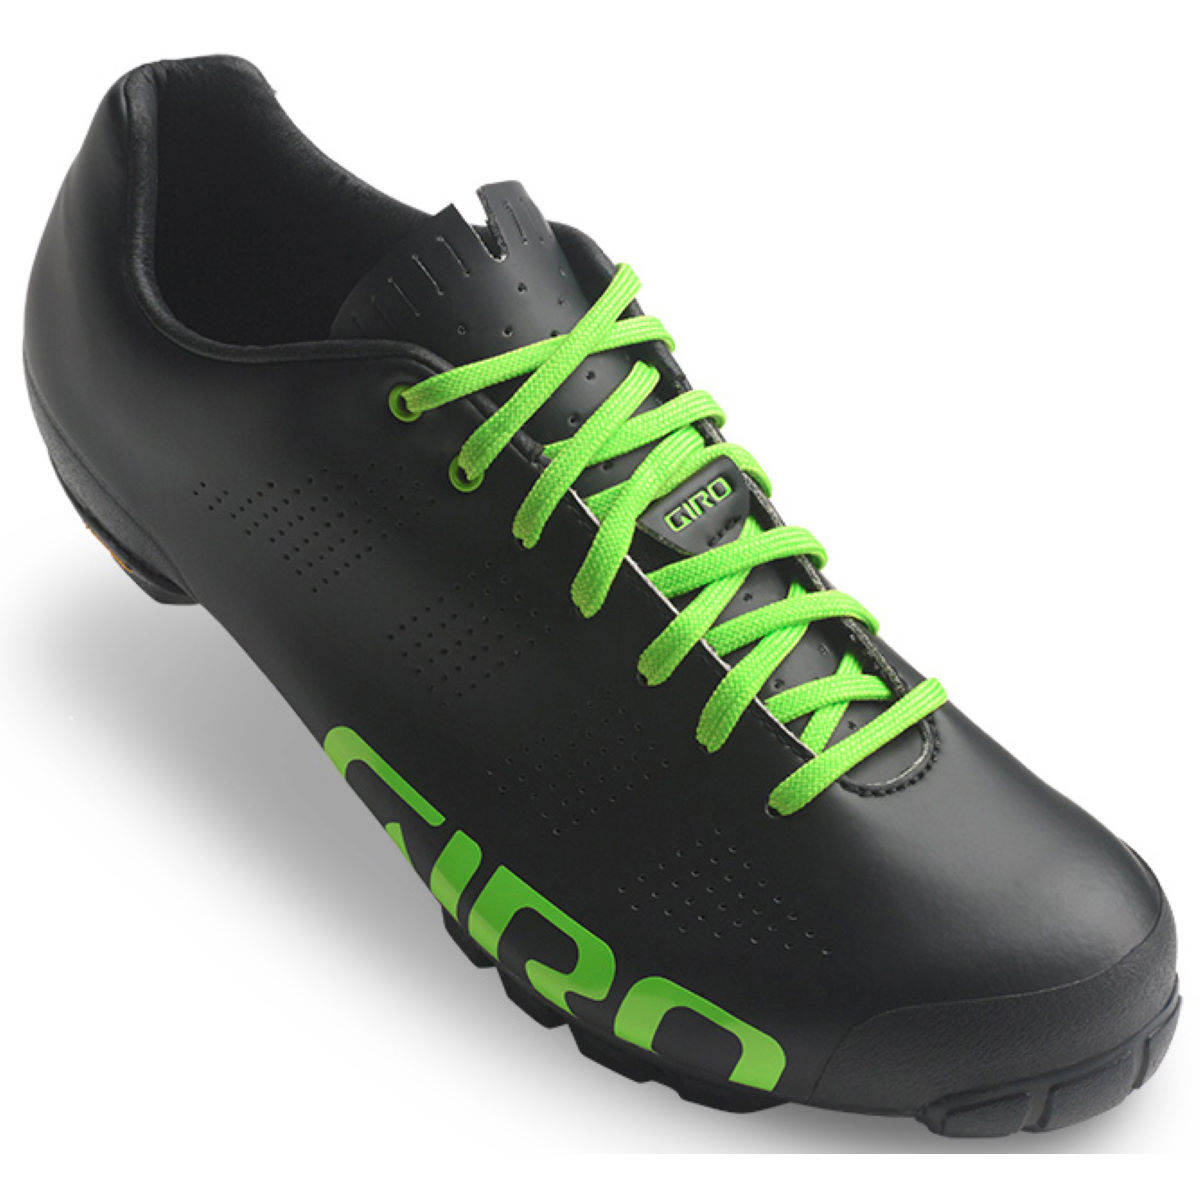 Zapatillas de MTB Giro Empire VR90 - Zapatillas de ciclismo